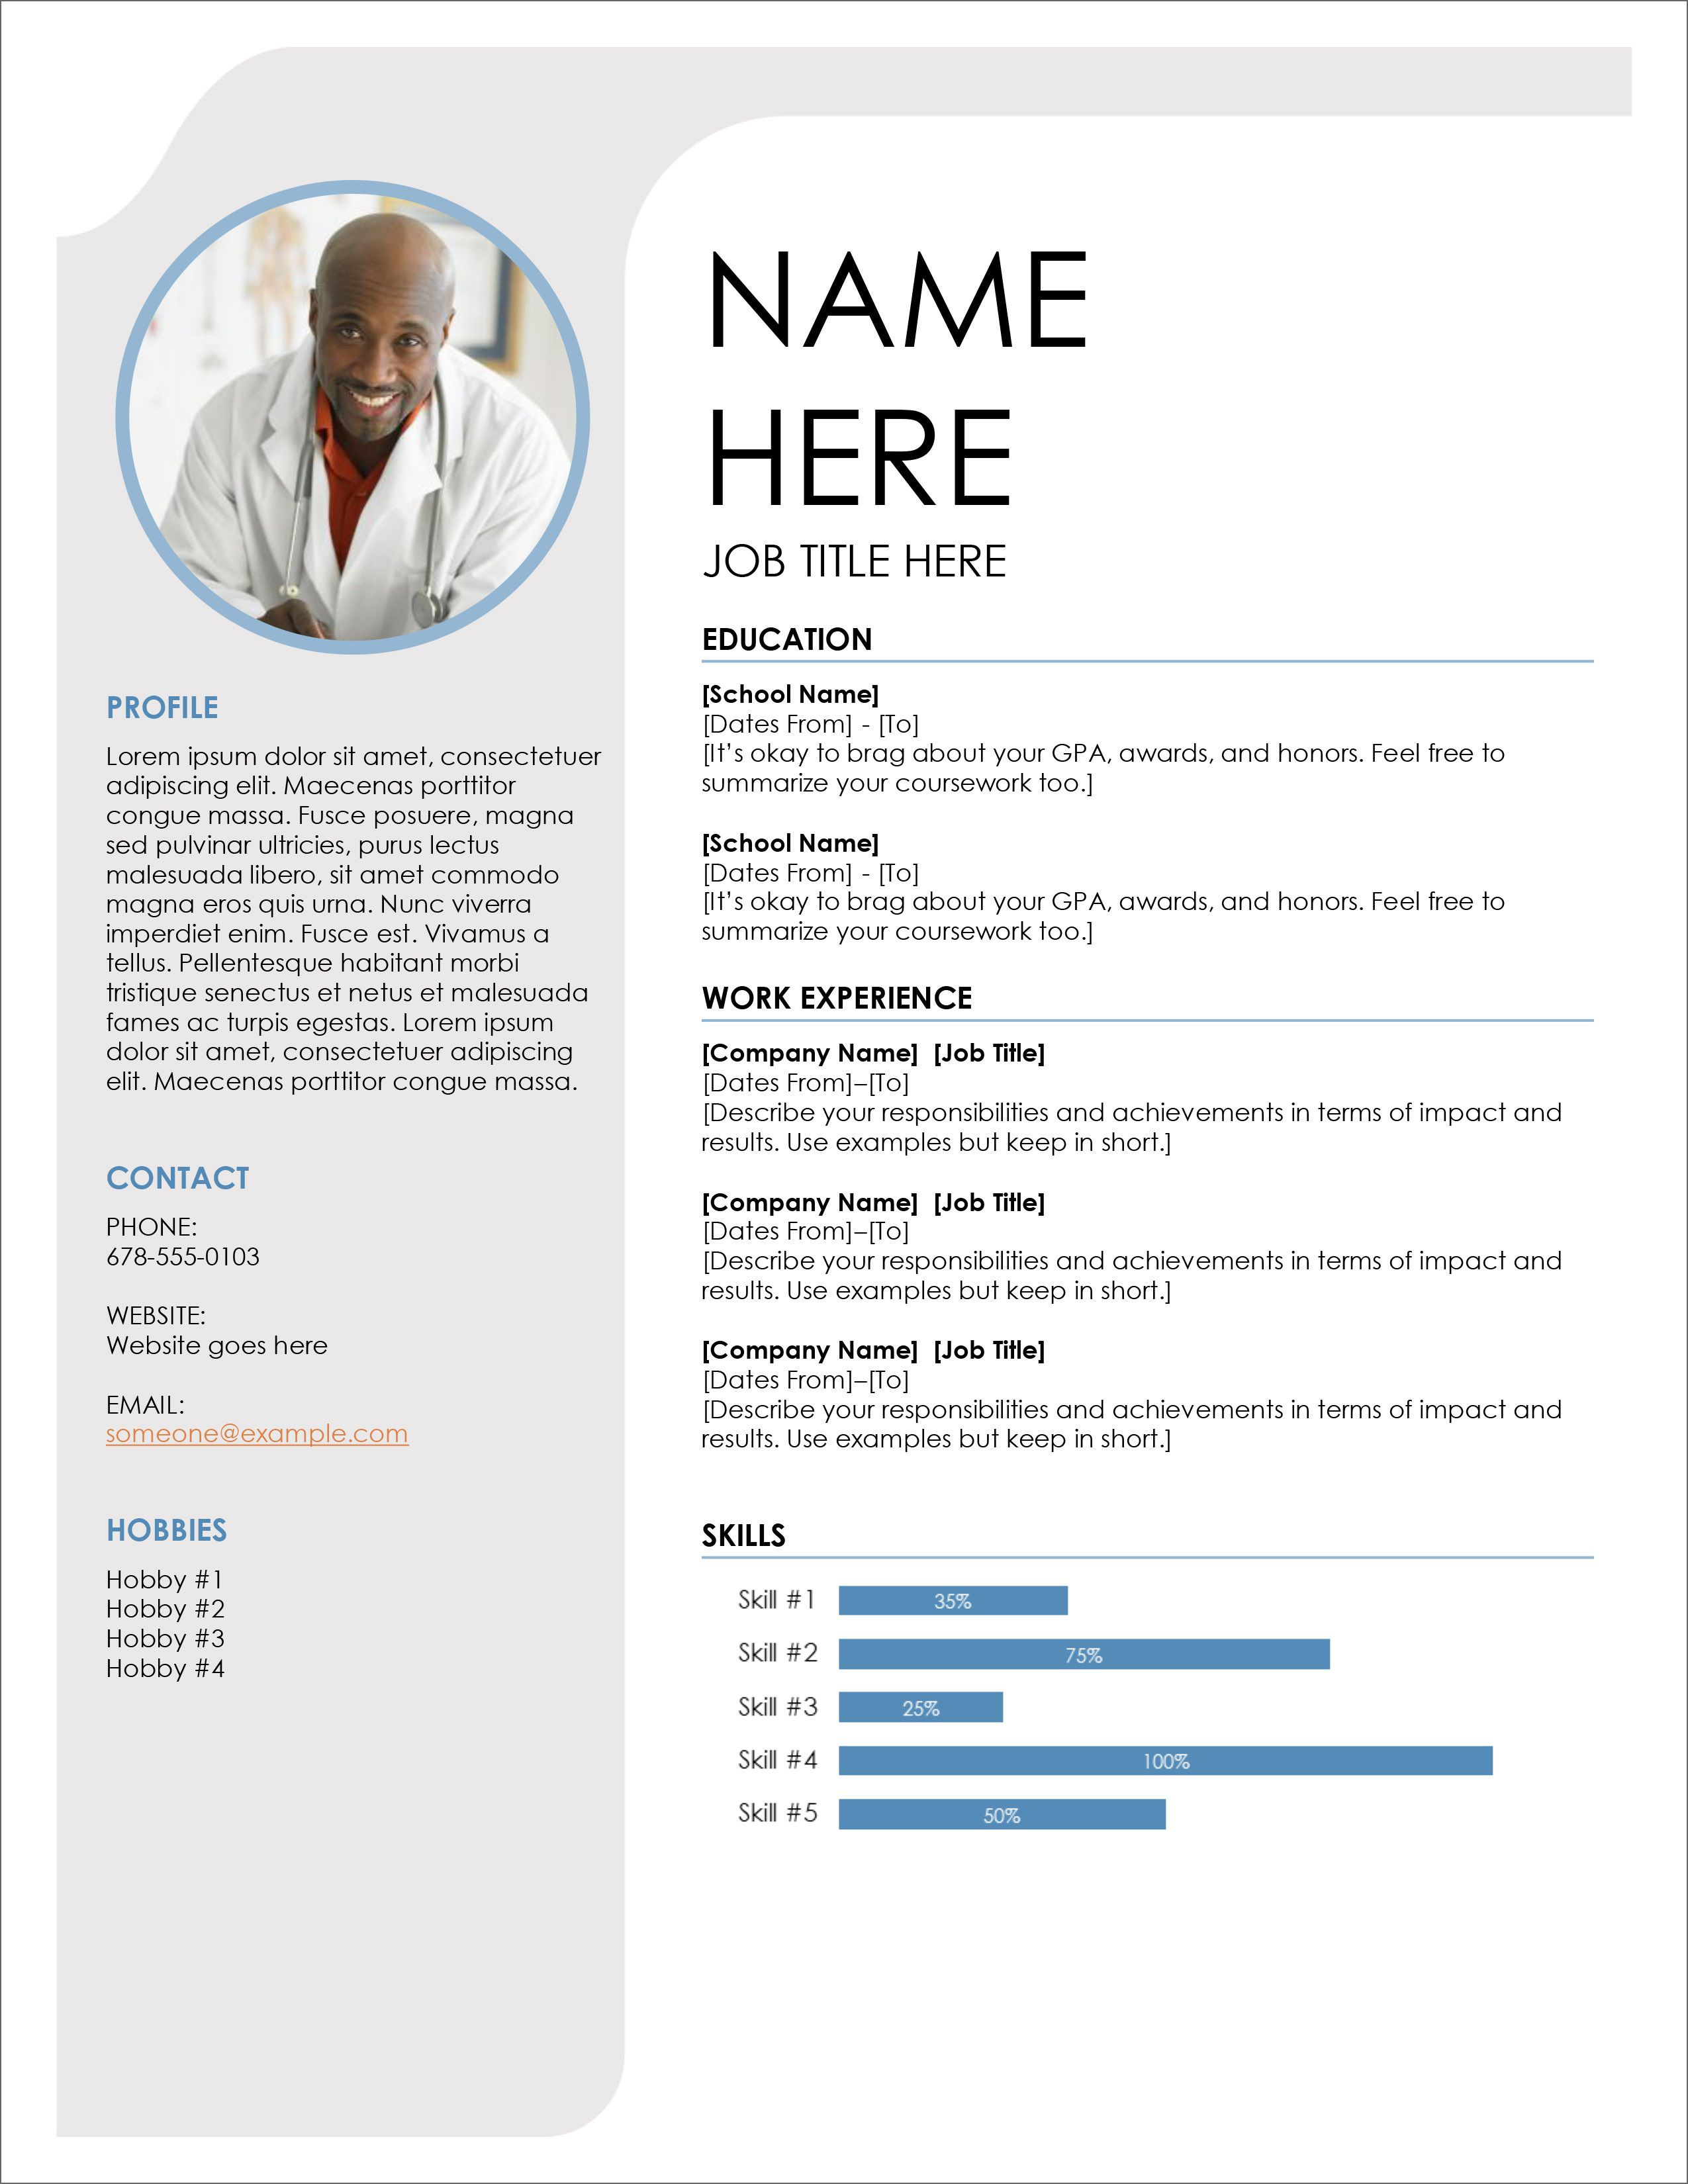 005 Marvelou Cv Template Free Download Word Doc Design  Editable Document For Fresher Student EngineerFull